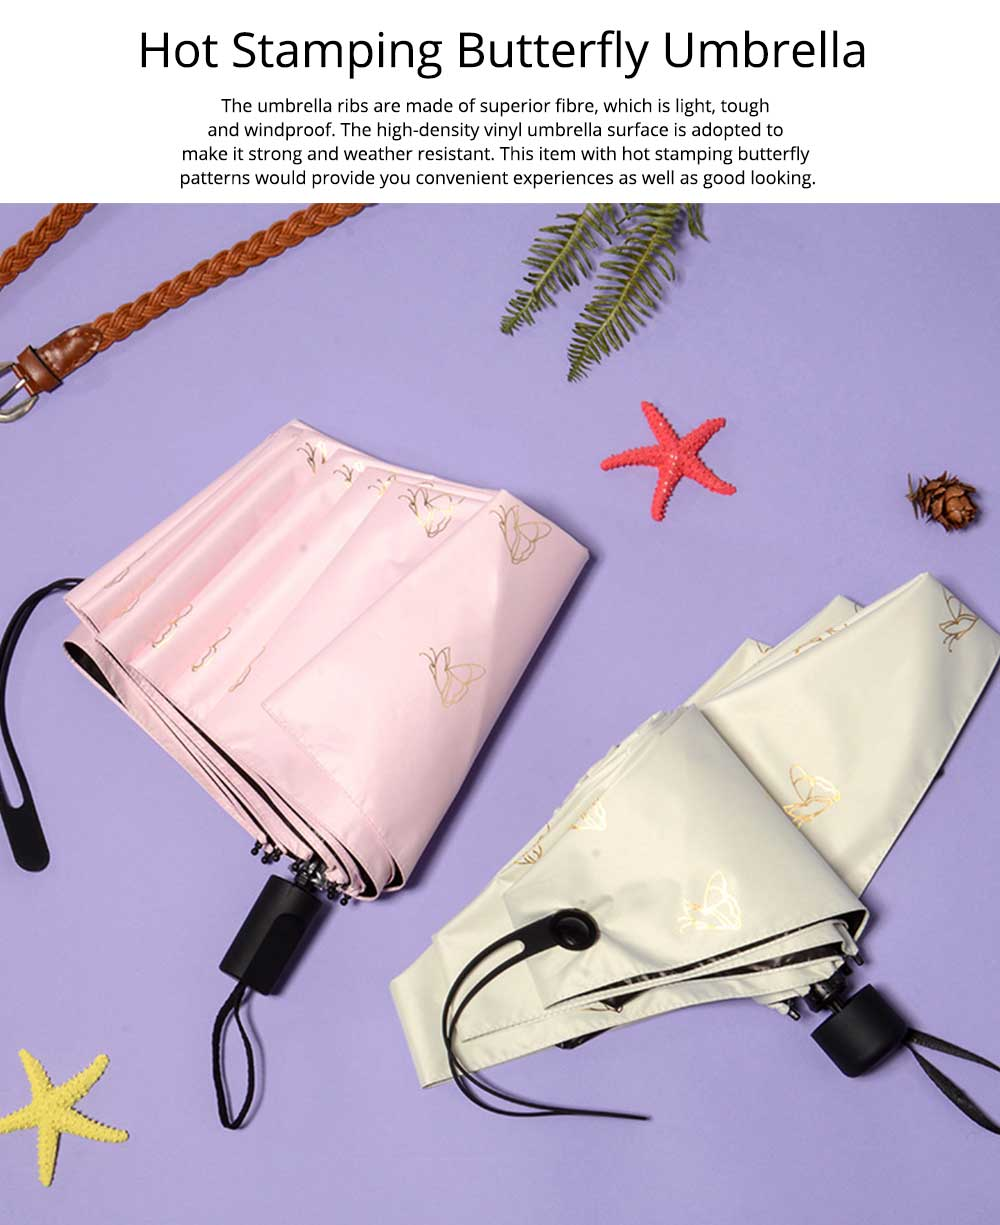 Triple or Five Folding Umbrella With Creative Hot Stamping Butterfly, Portable Folding Compact Umbrella for Sunny Rainy Days 0